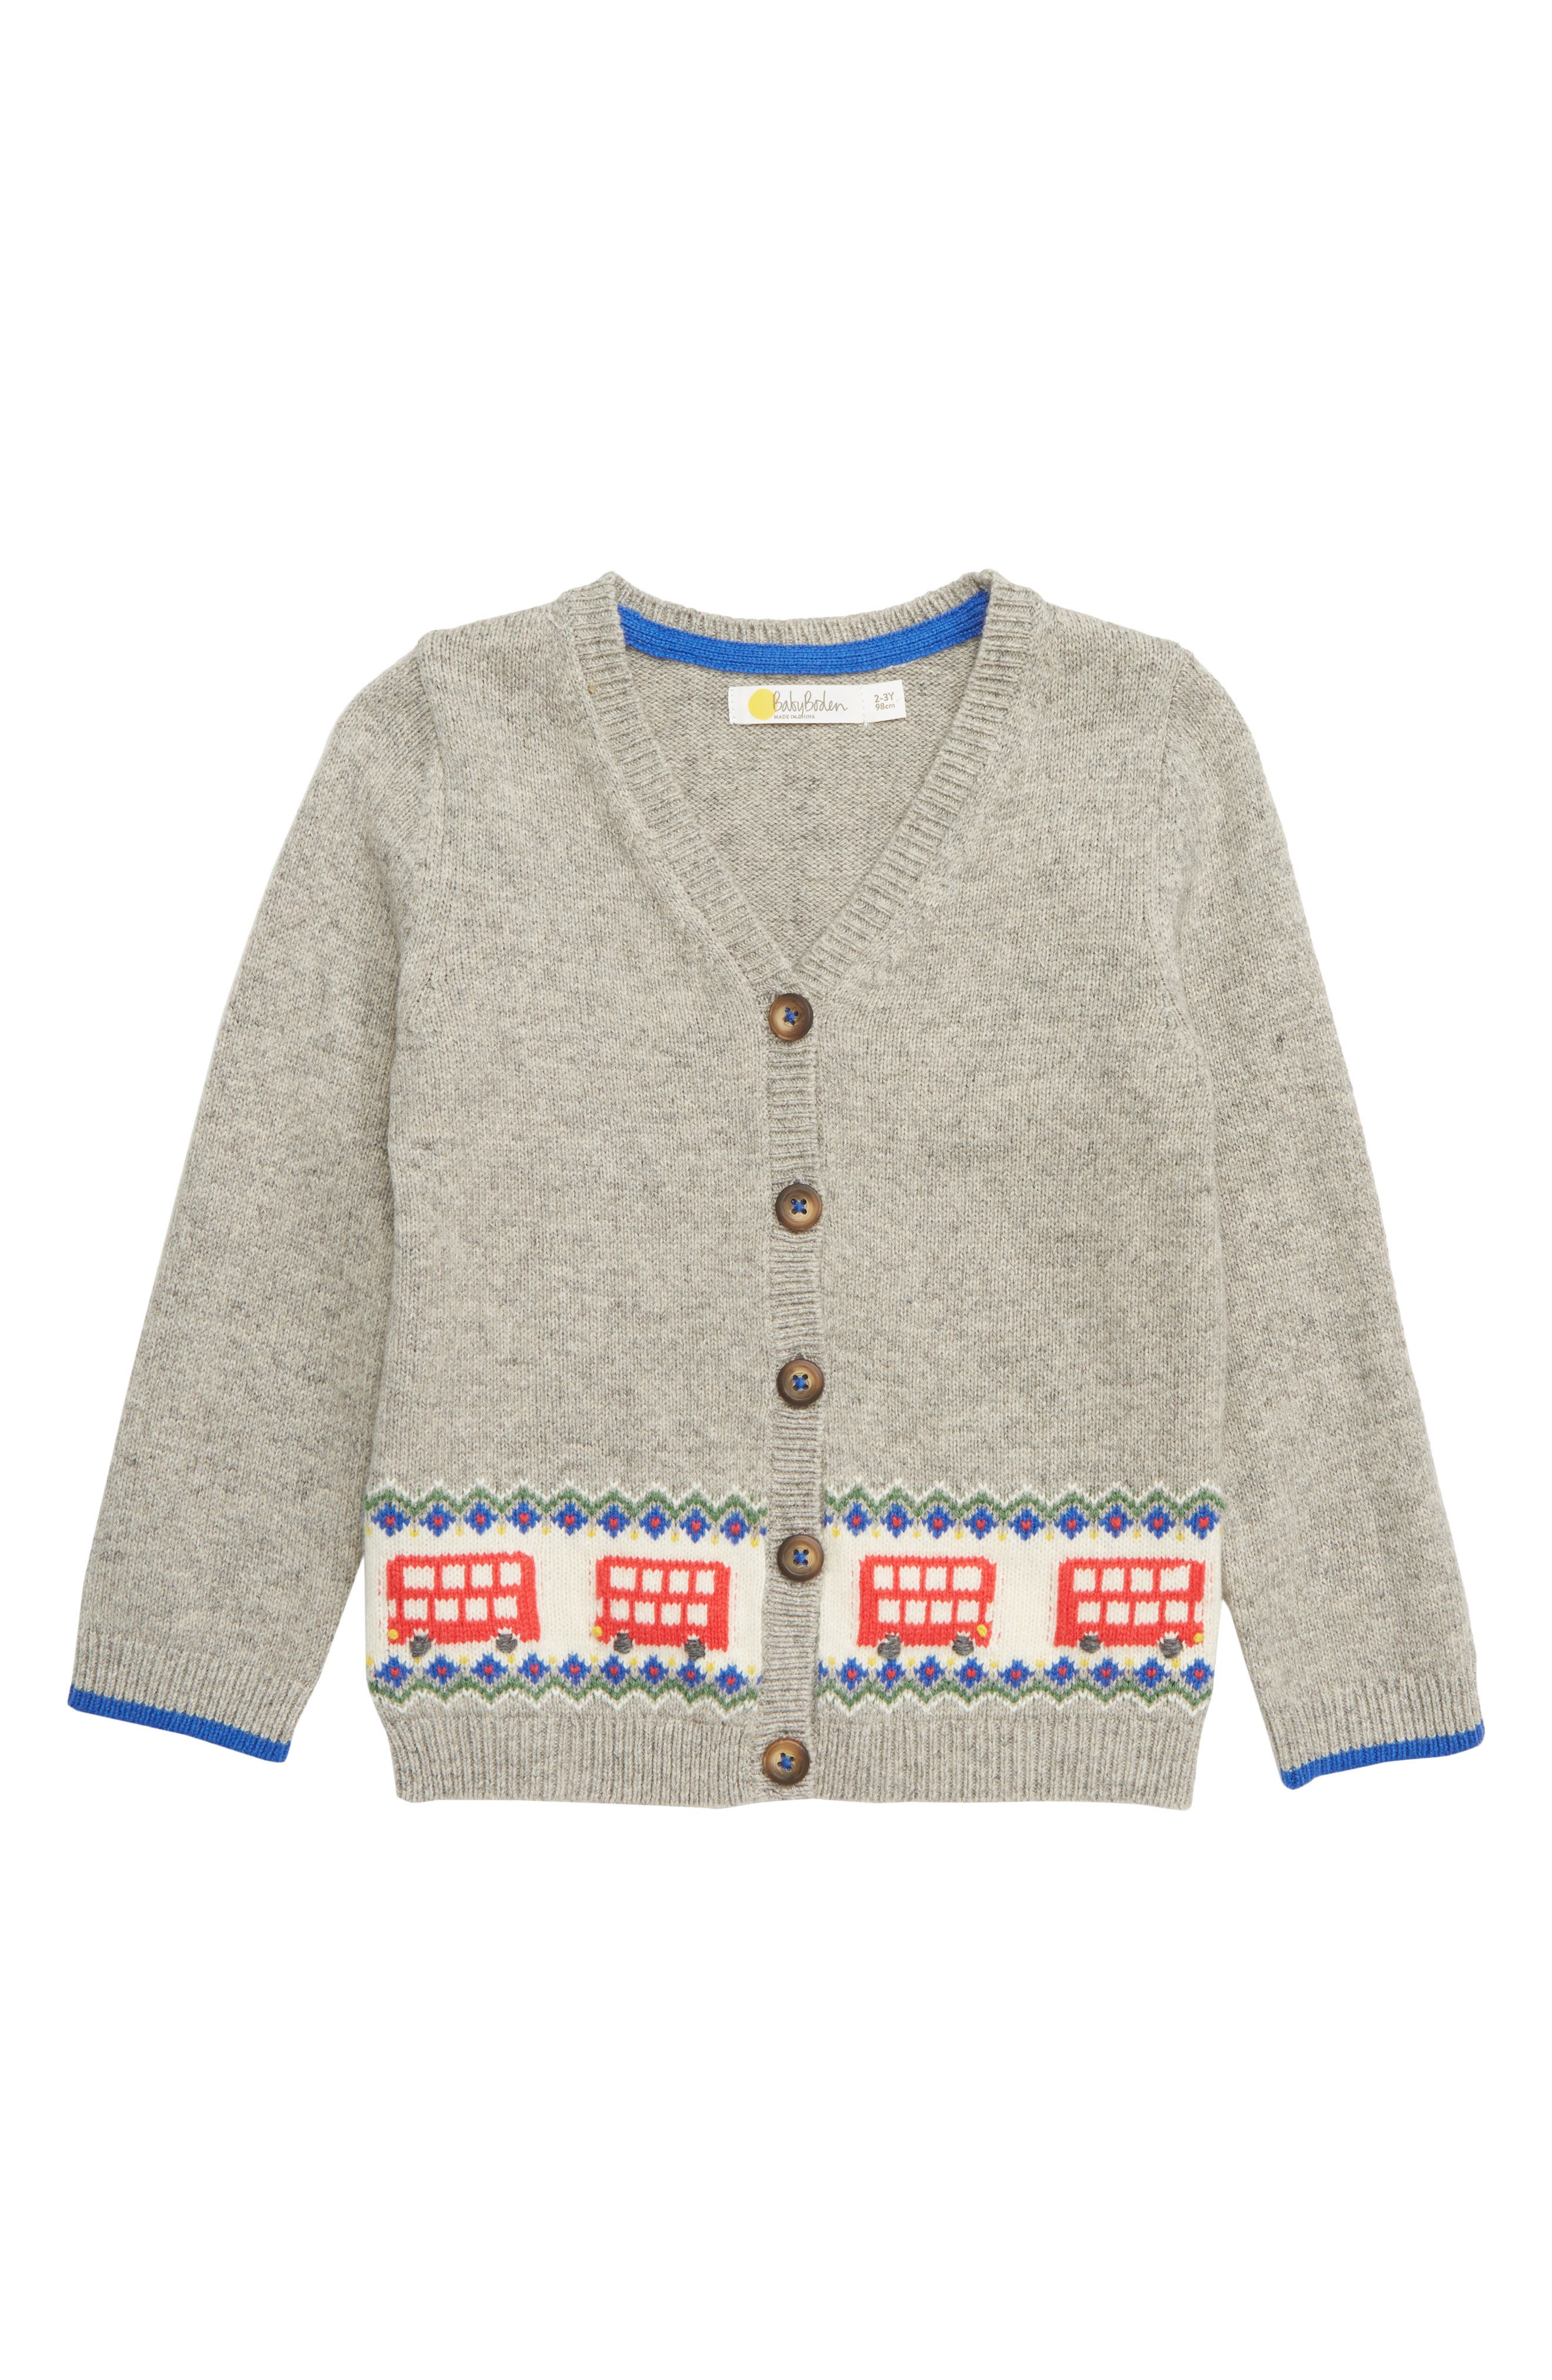 MINI BODEN,                             Buses Fair Isle Cardigan,                             Main thumbnail 1, color,                             GRY GREY MARL BUSES